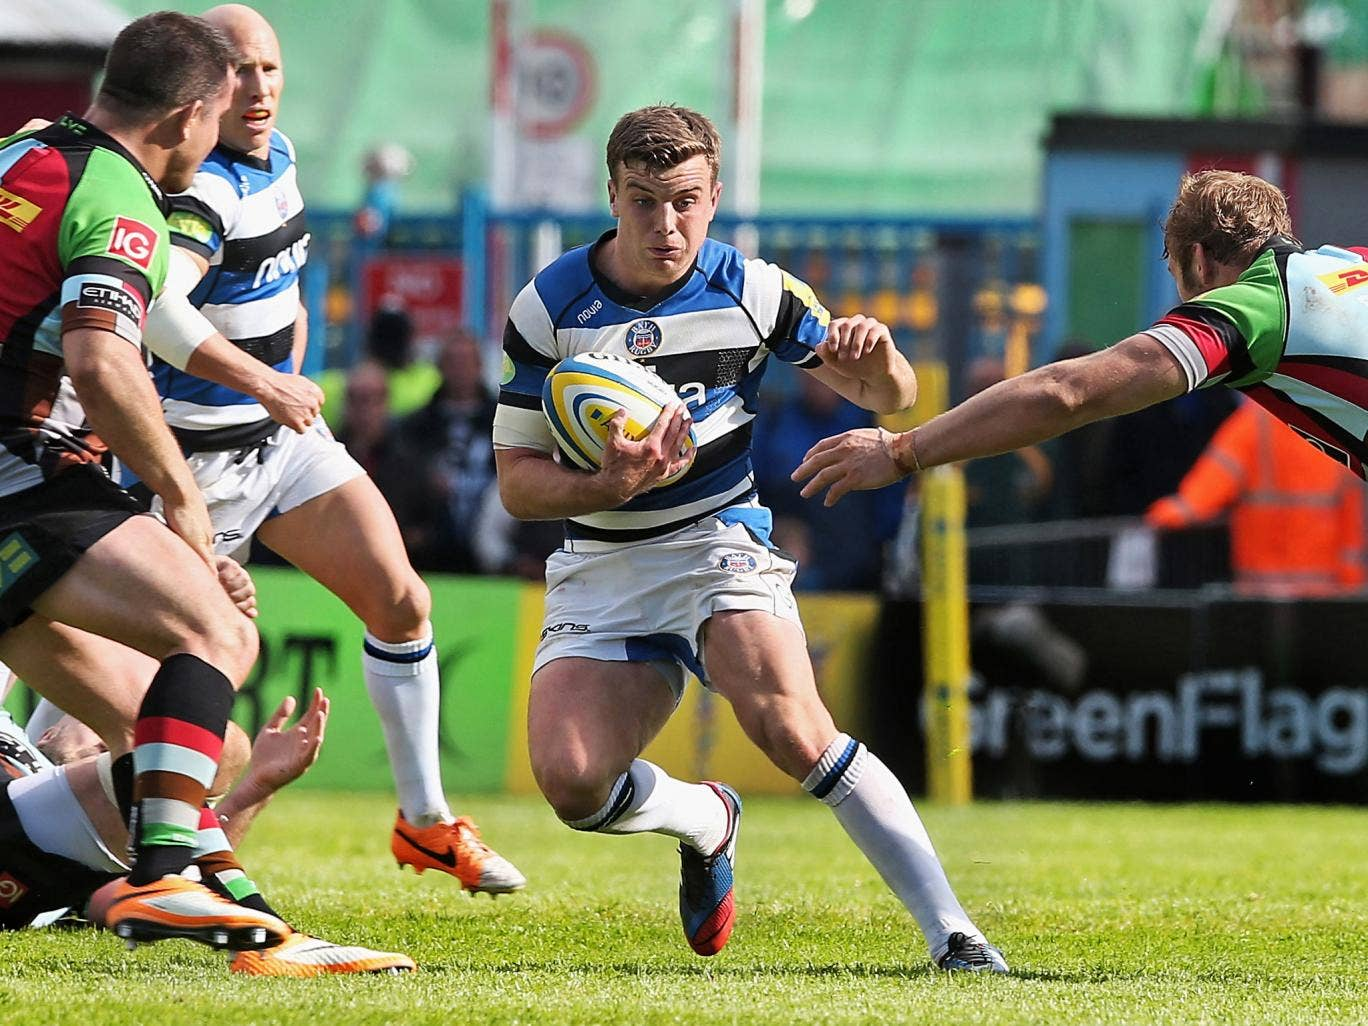 George Ford, the Bath outside-half, makes a break against Harlequins at the Stoop on Saturday, but a 19-16 defeat meant that Quins and not the West Countrymen take their place in the play-offs